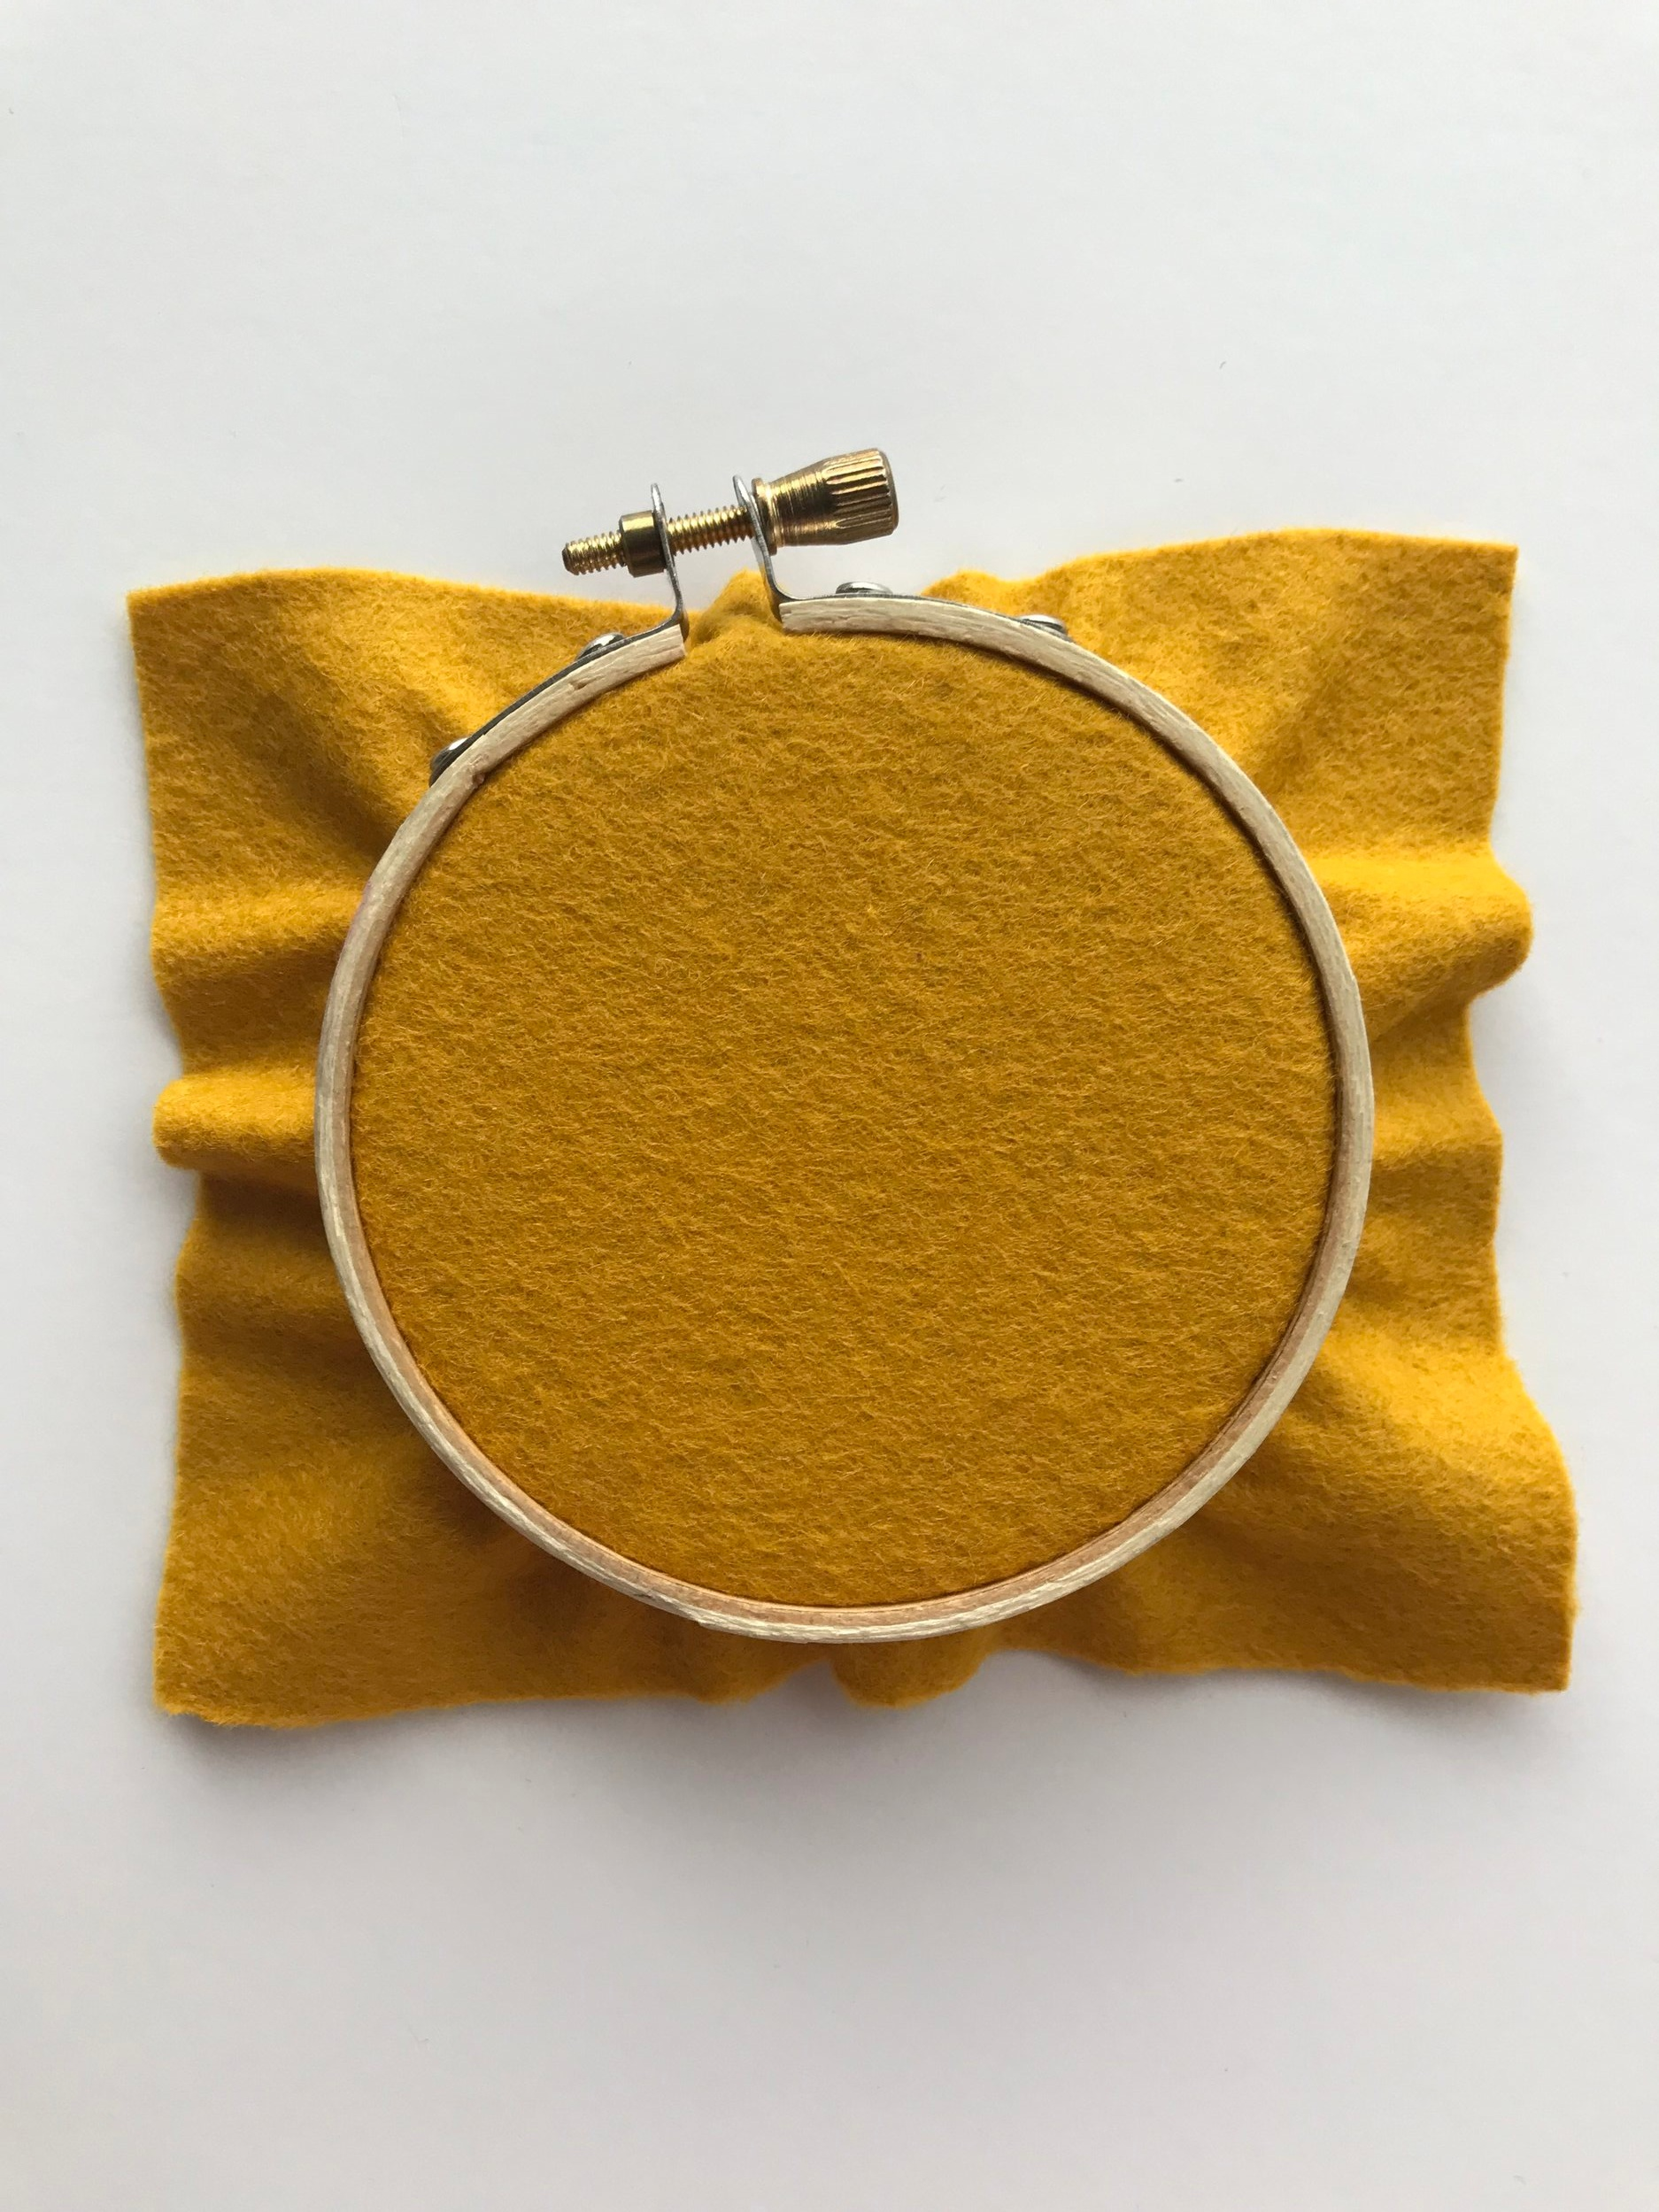 Place the fabric on the embroidery hoop.